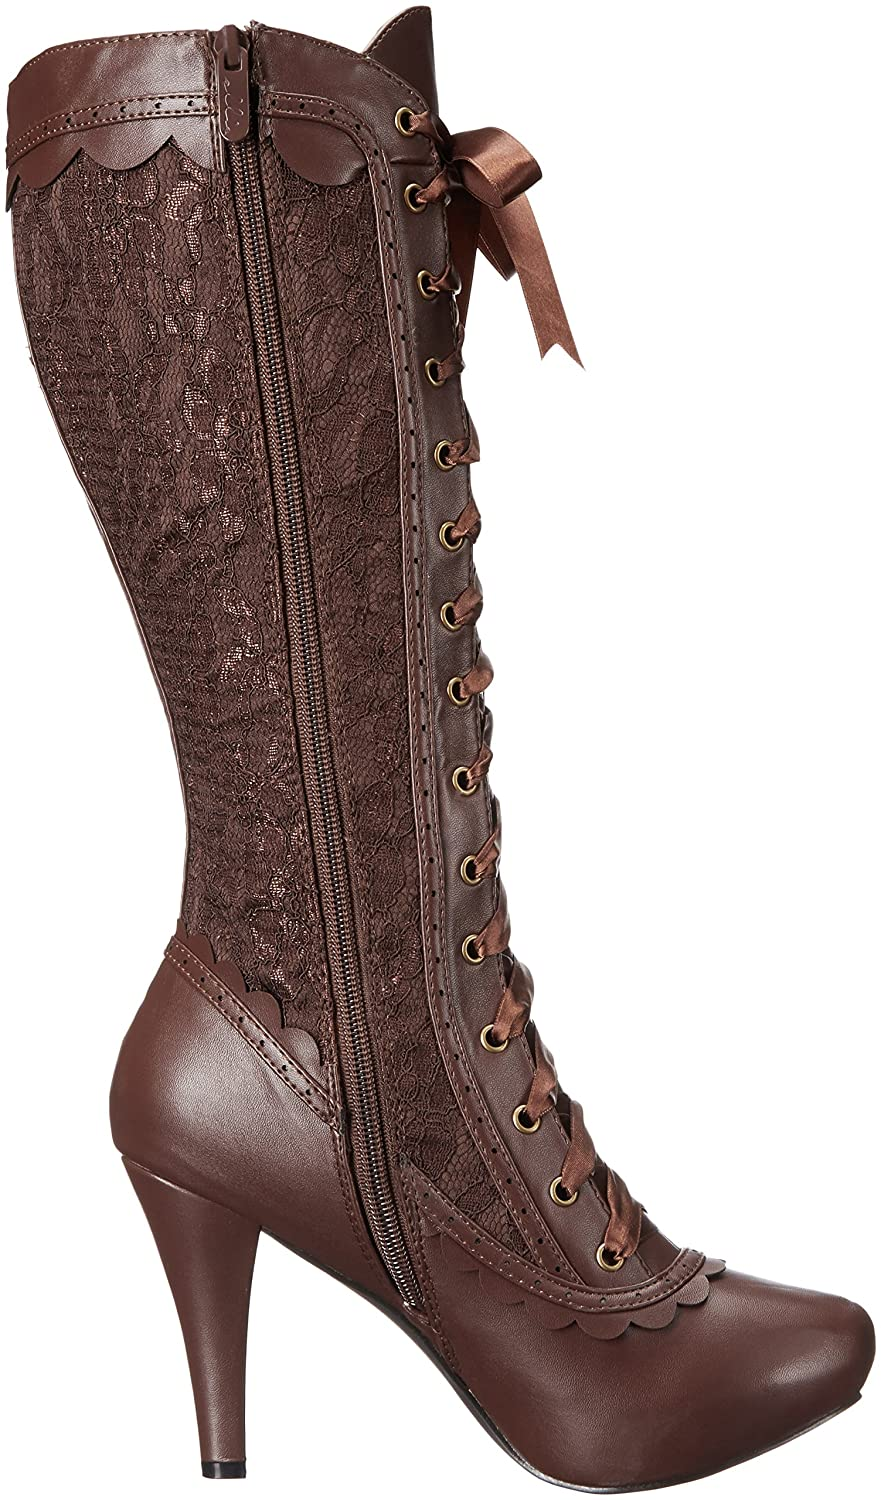 Ellie Shoes Women's 414-Mary Boot B01IRX411K 6 B(M) US|Brown